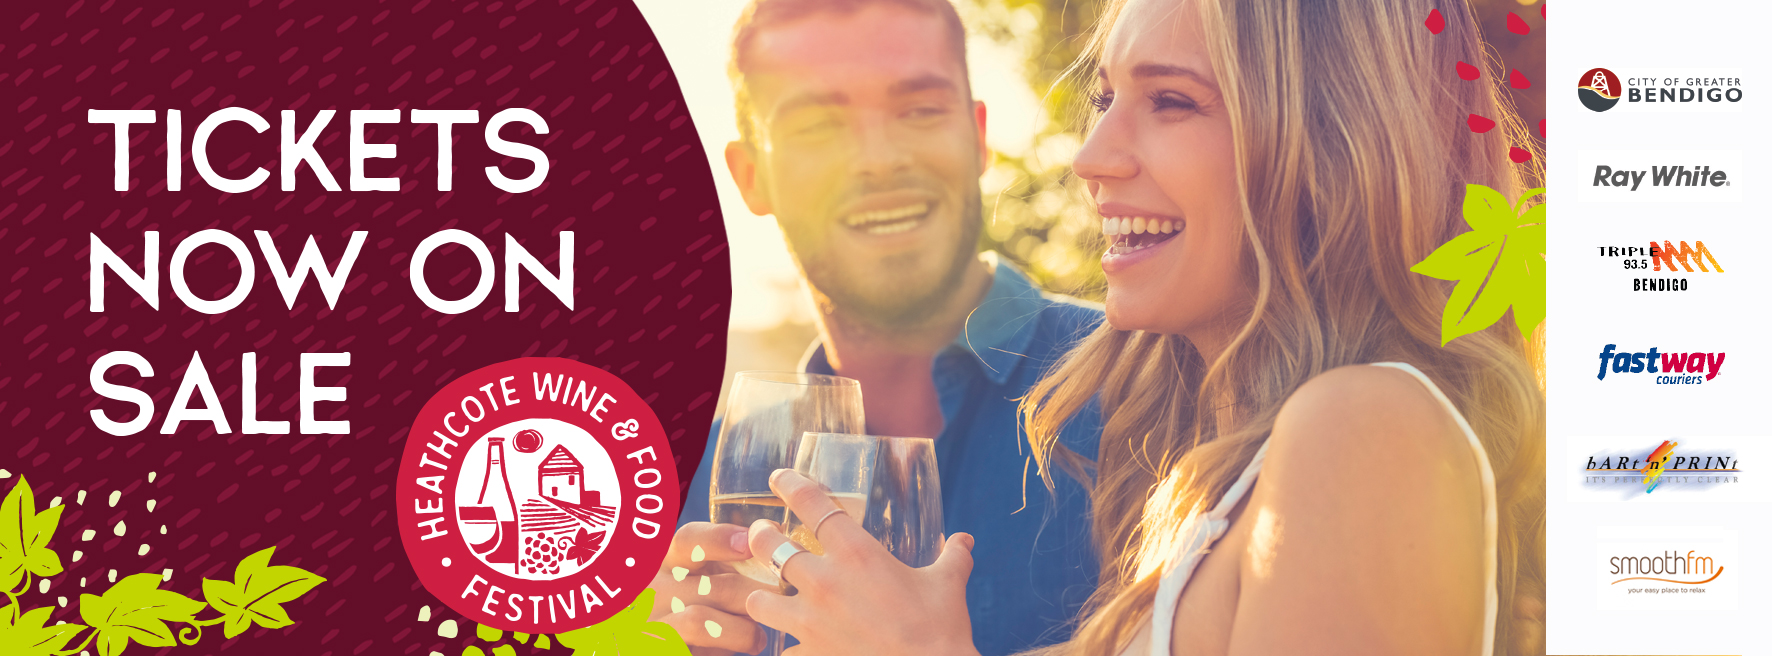 Heathcote Wine and Food Festival 2018 Facebook Banner